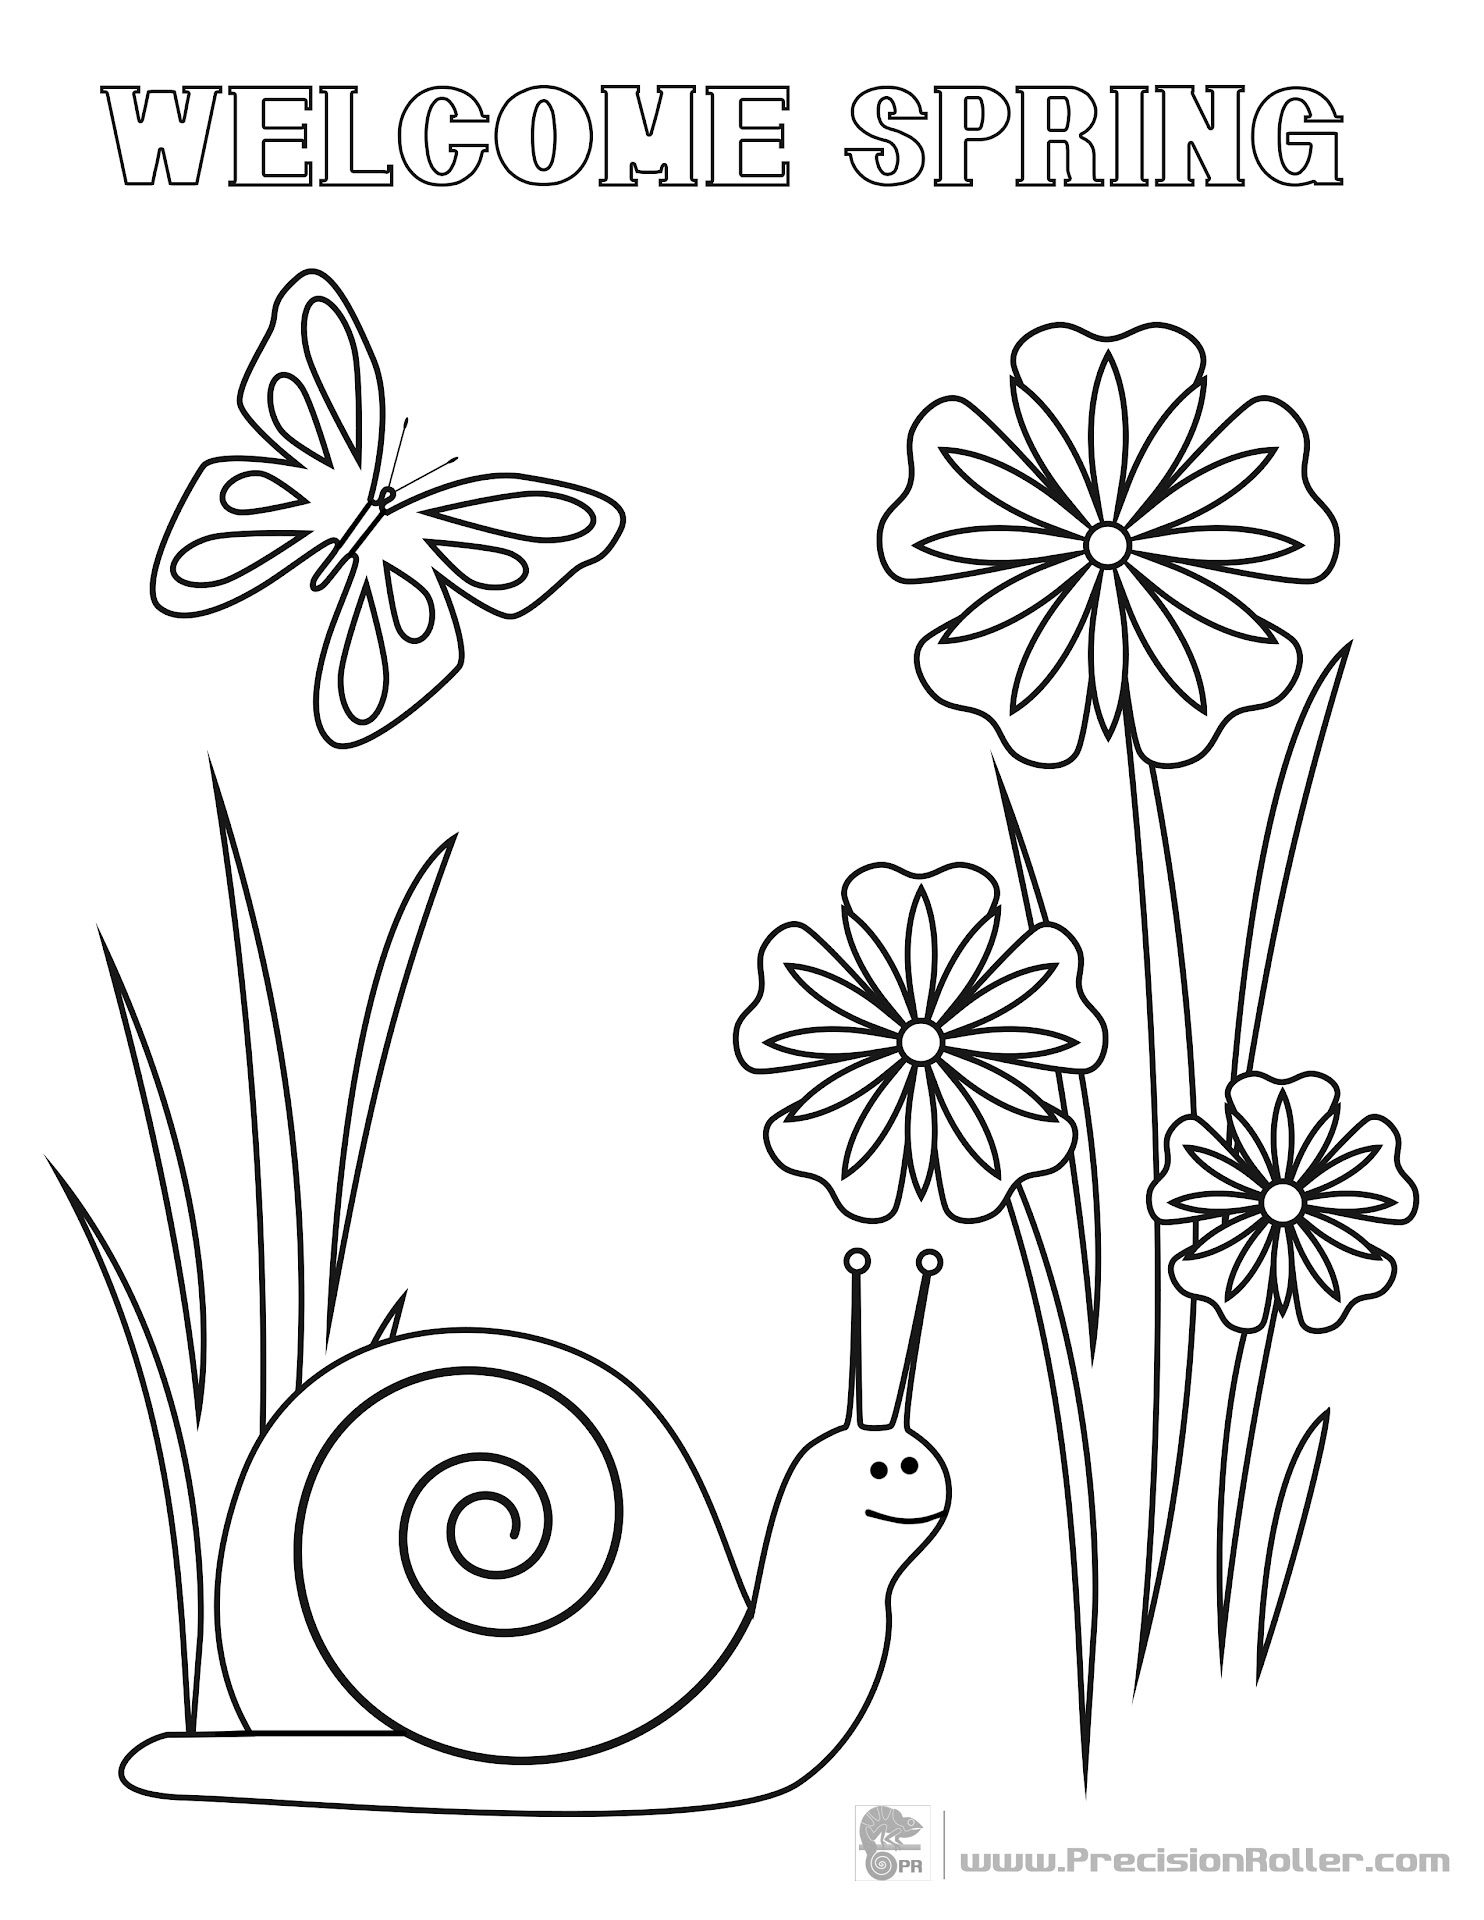 Top 10 welcome spring coloring pages library kids for Welcome spring coloring pages